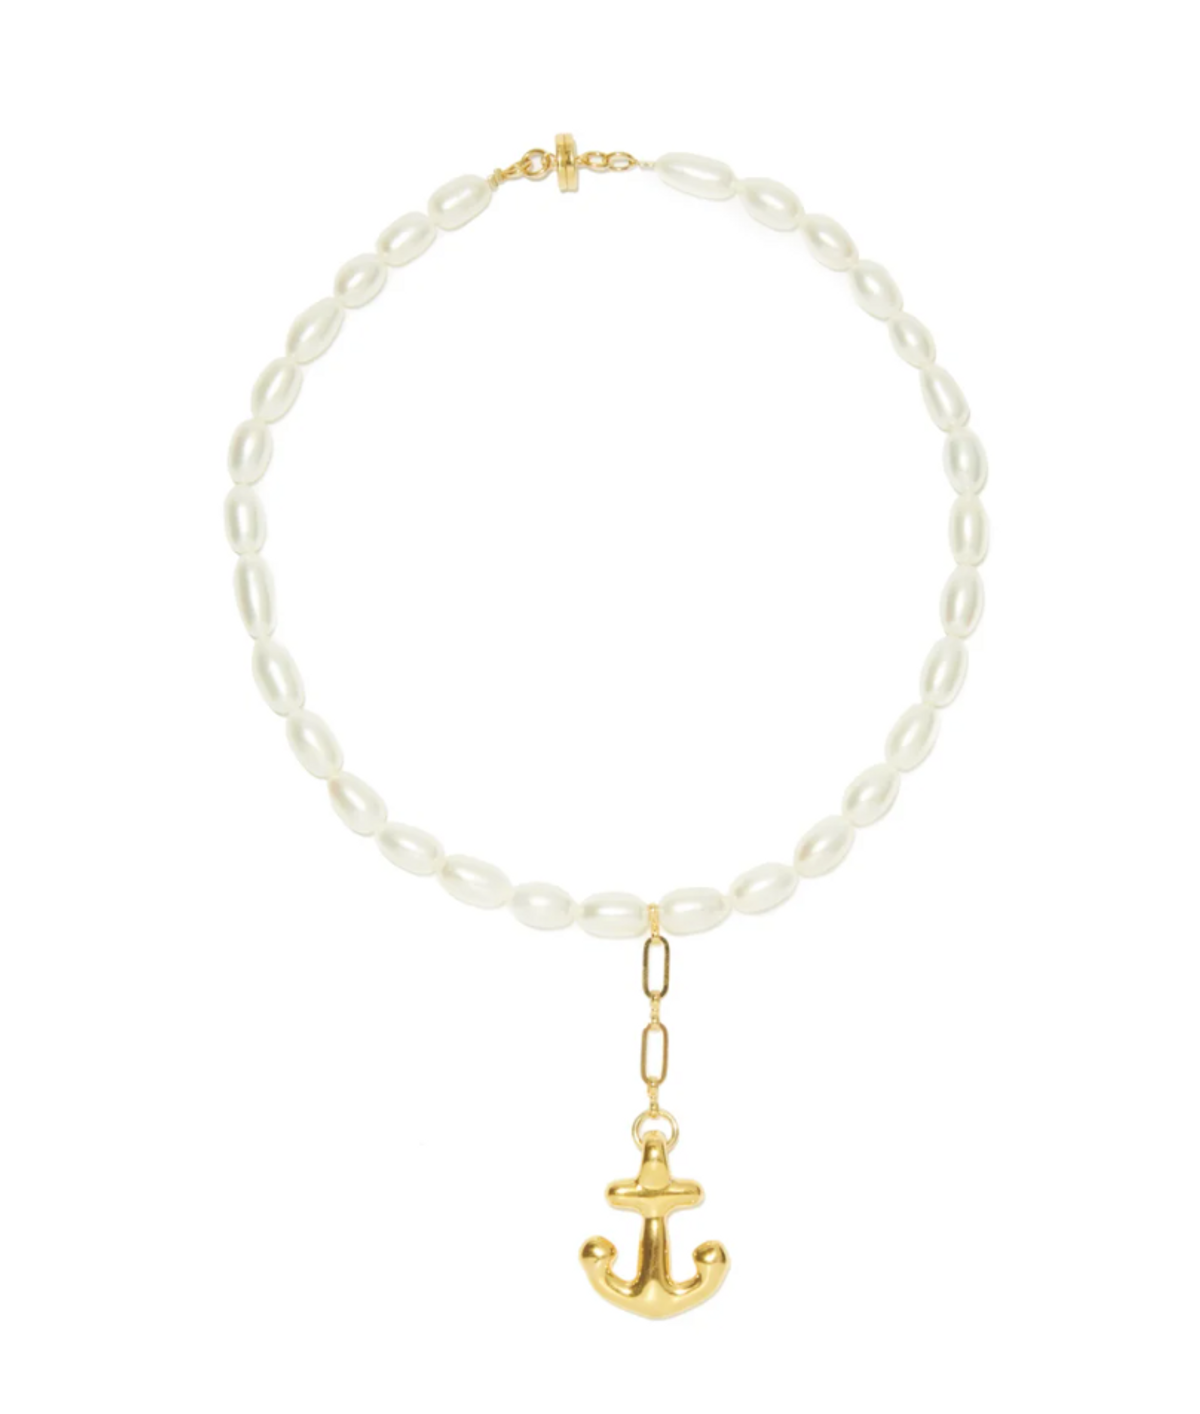 Anchor Charm Pearl & 24kt Gold-plated Necklace